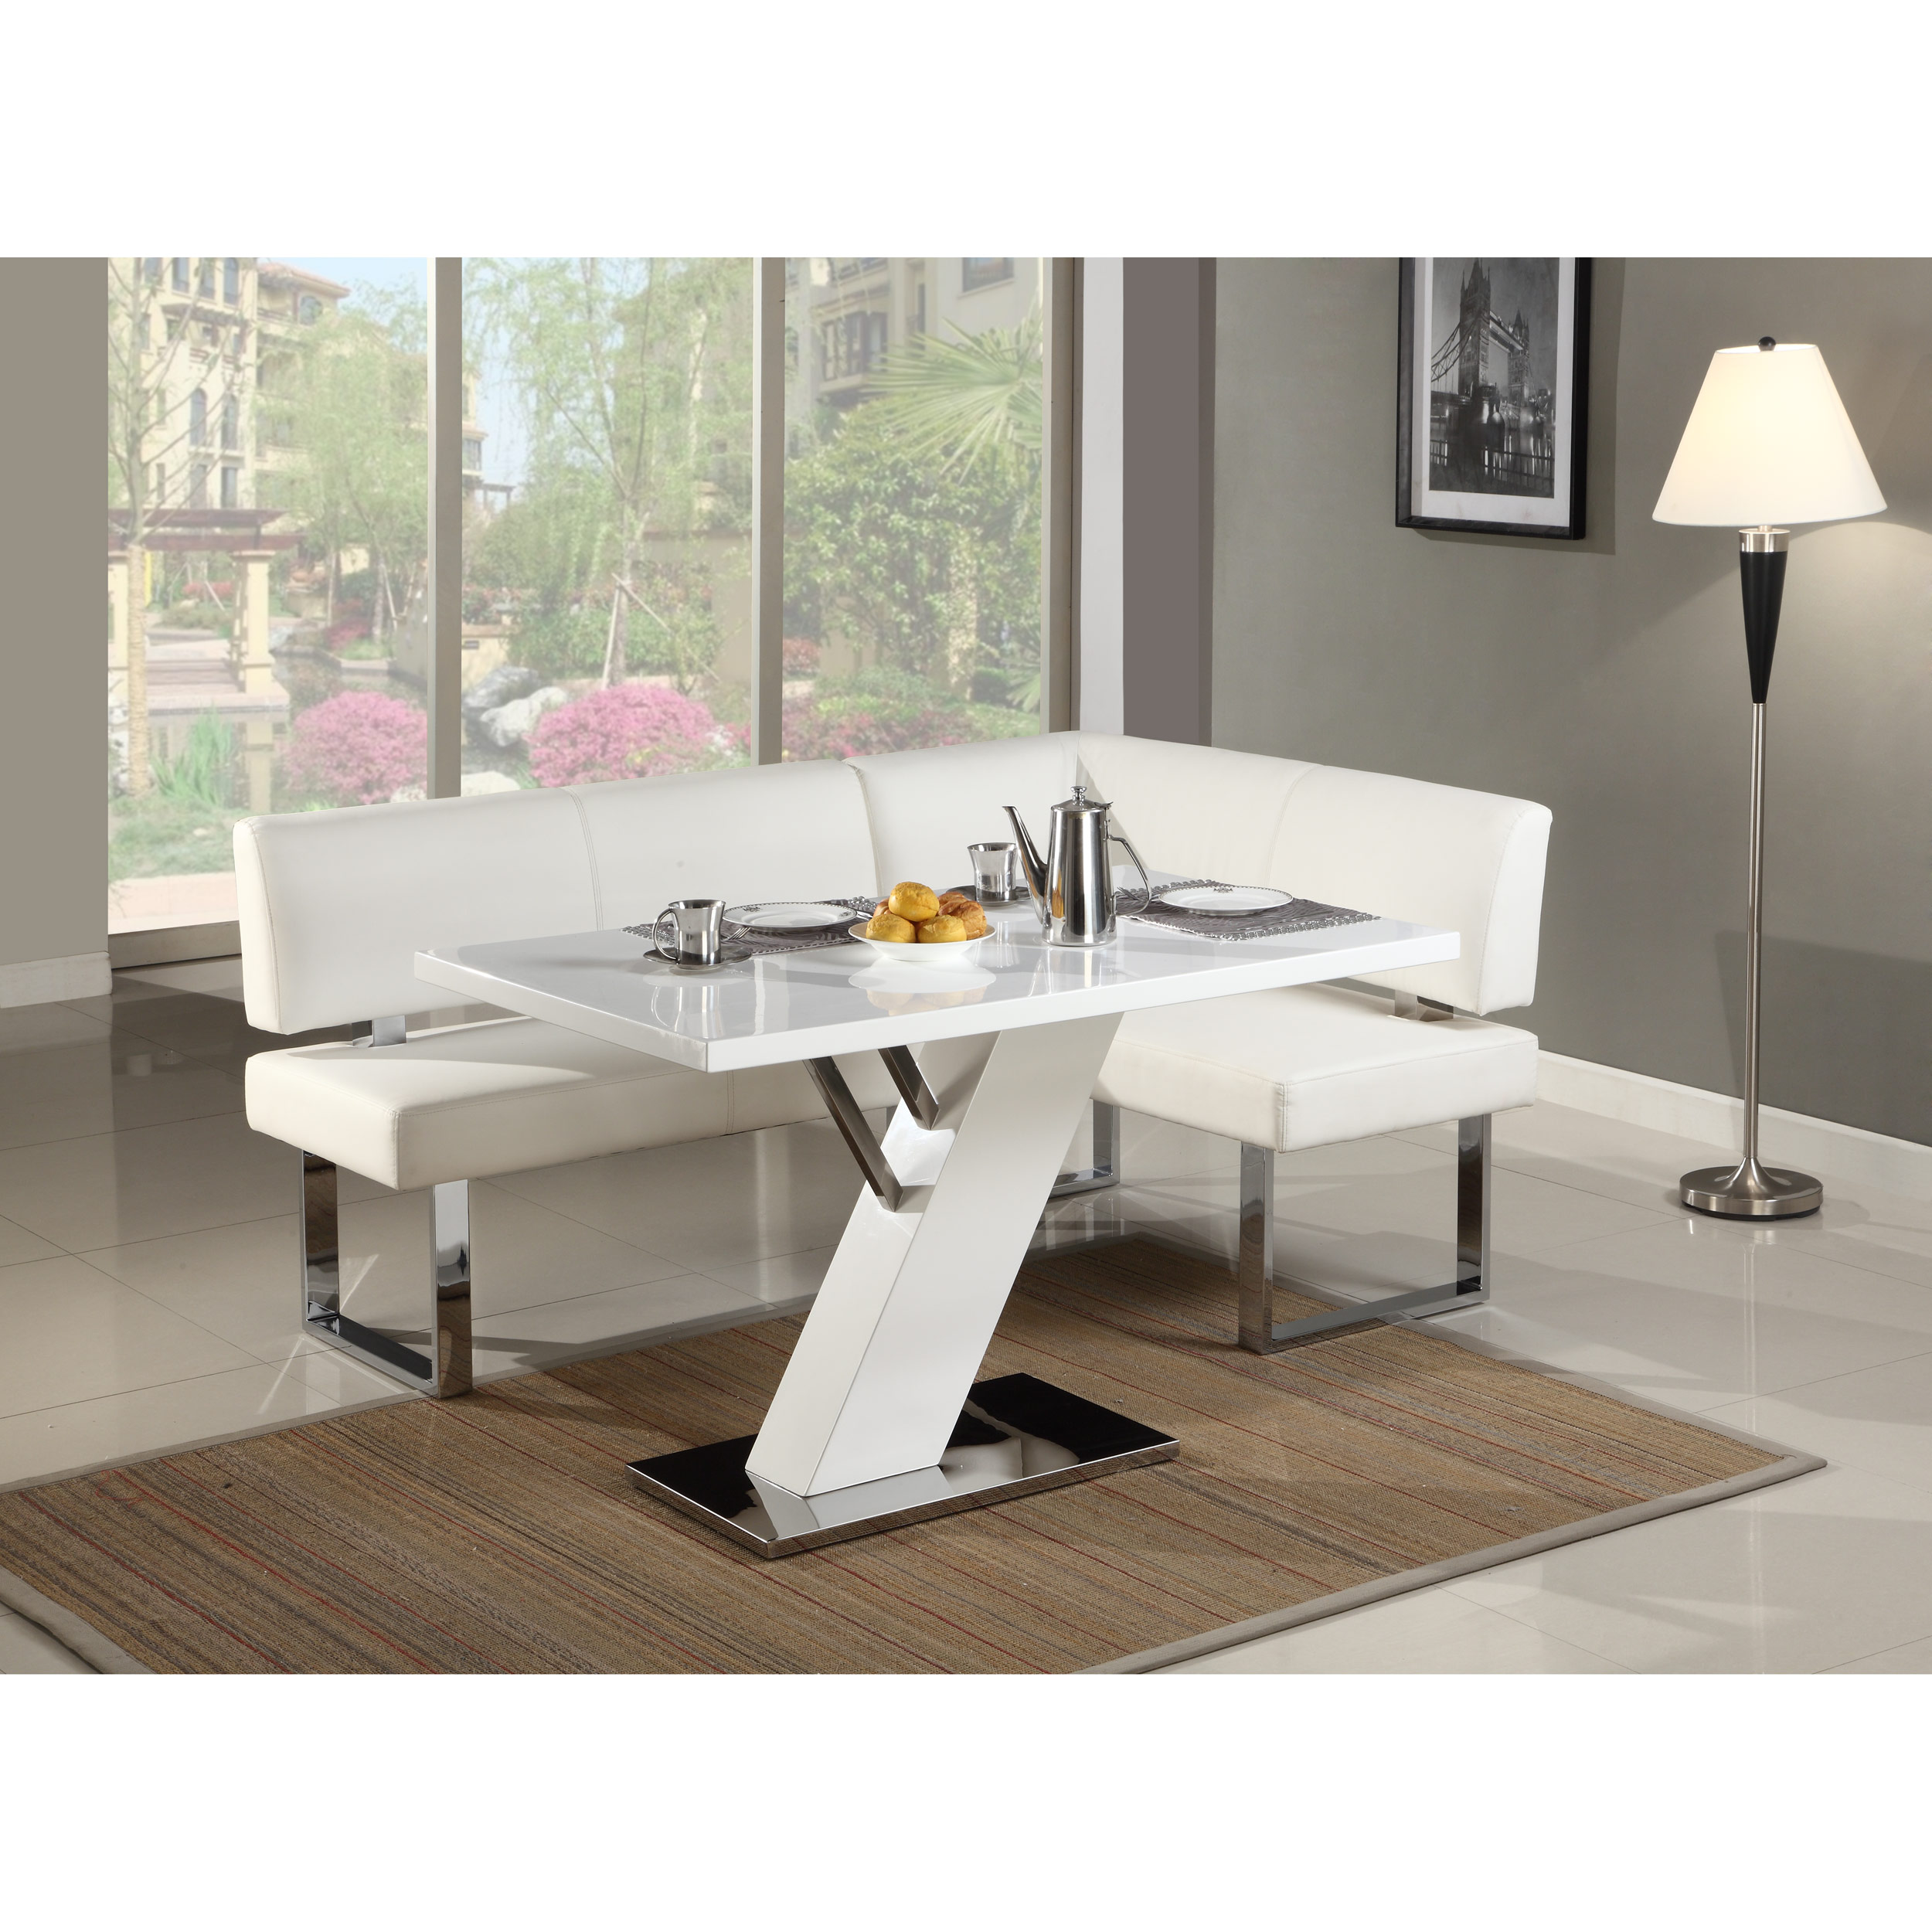 Dinette Bench Seating: Nook Corner Bench Seating White